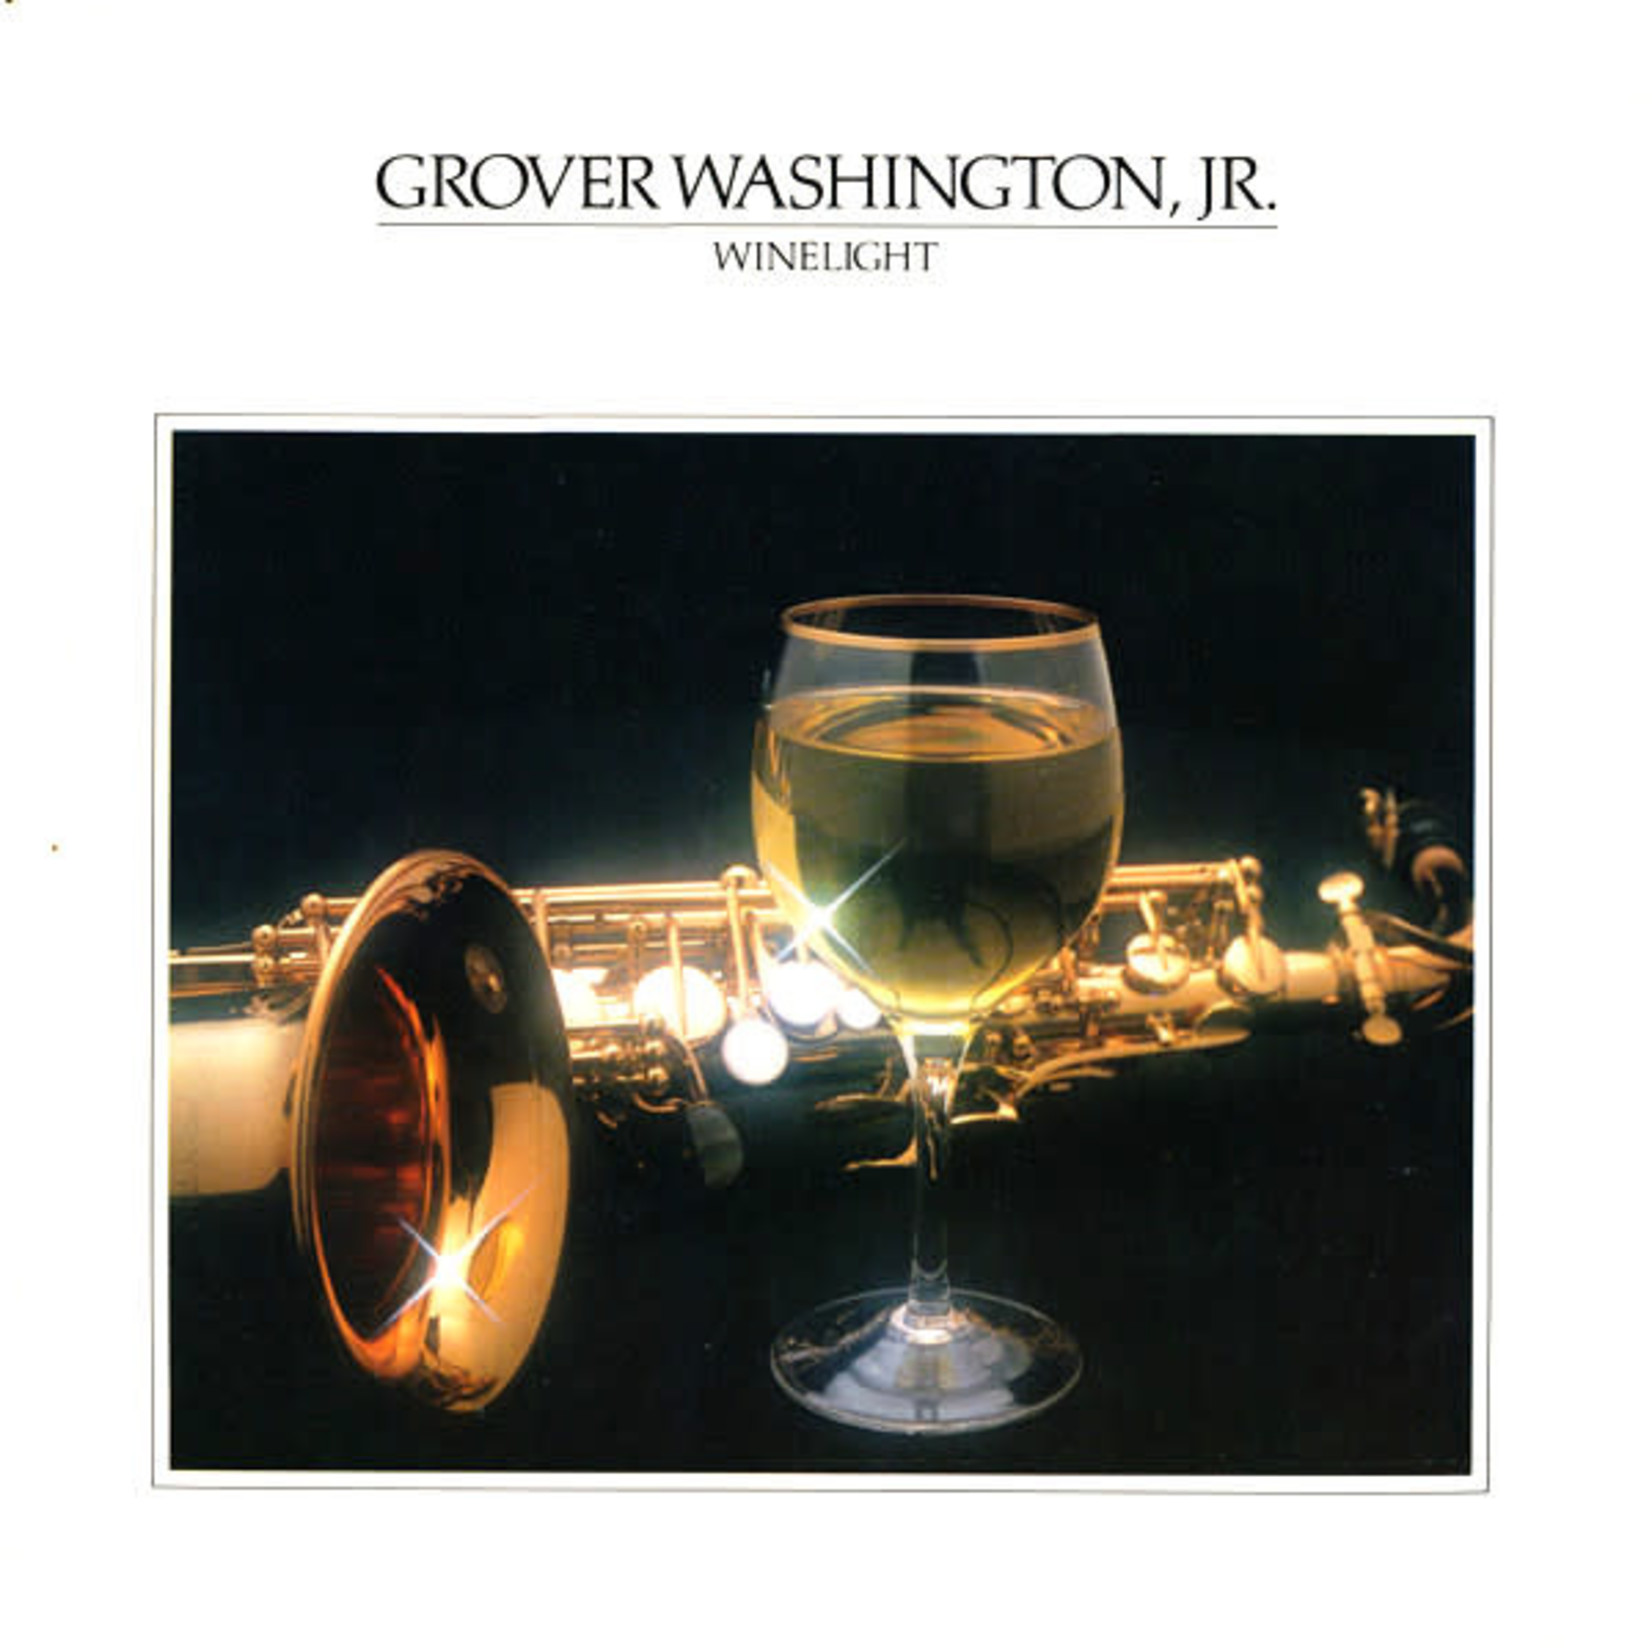 [Vintage] Washington, Grover, Jr.: Winelight ('Just the Two of Us')